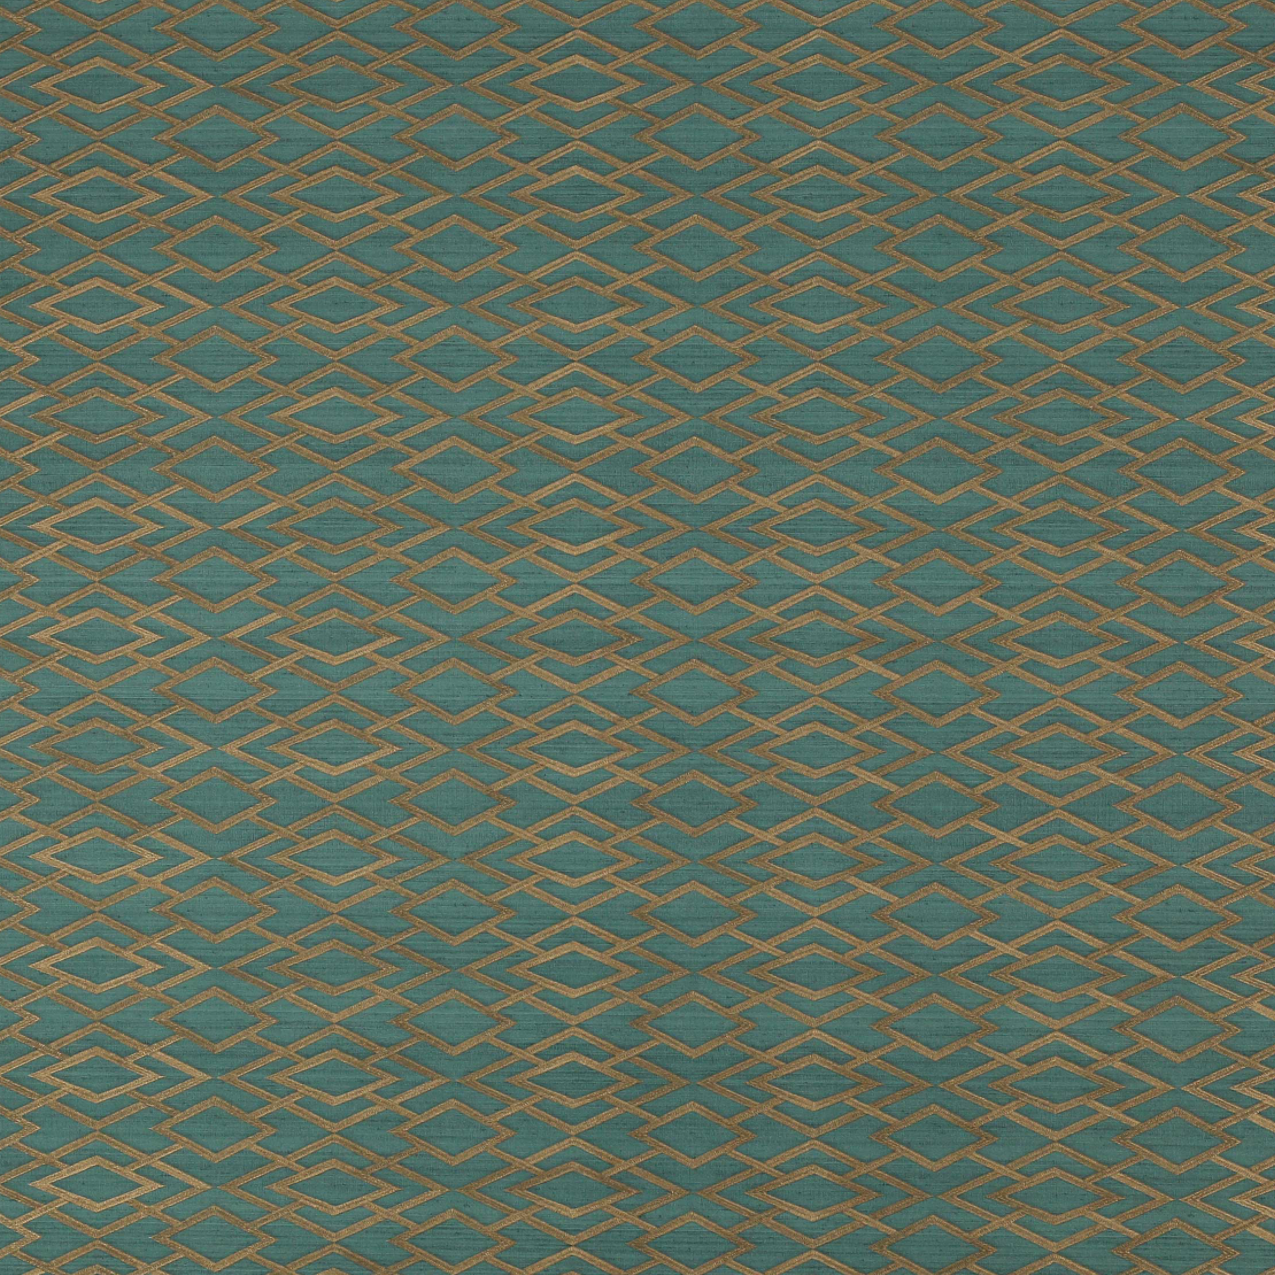 Geometric Silk Teal Wallpaper